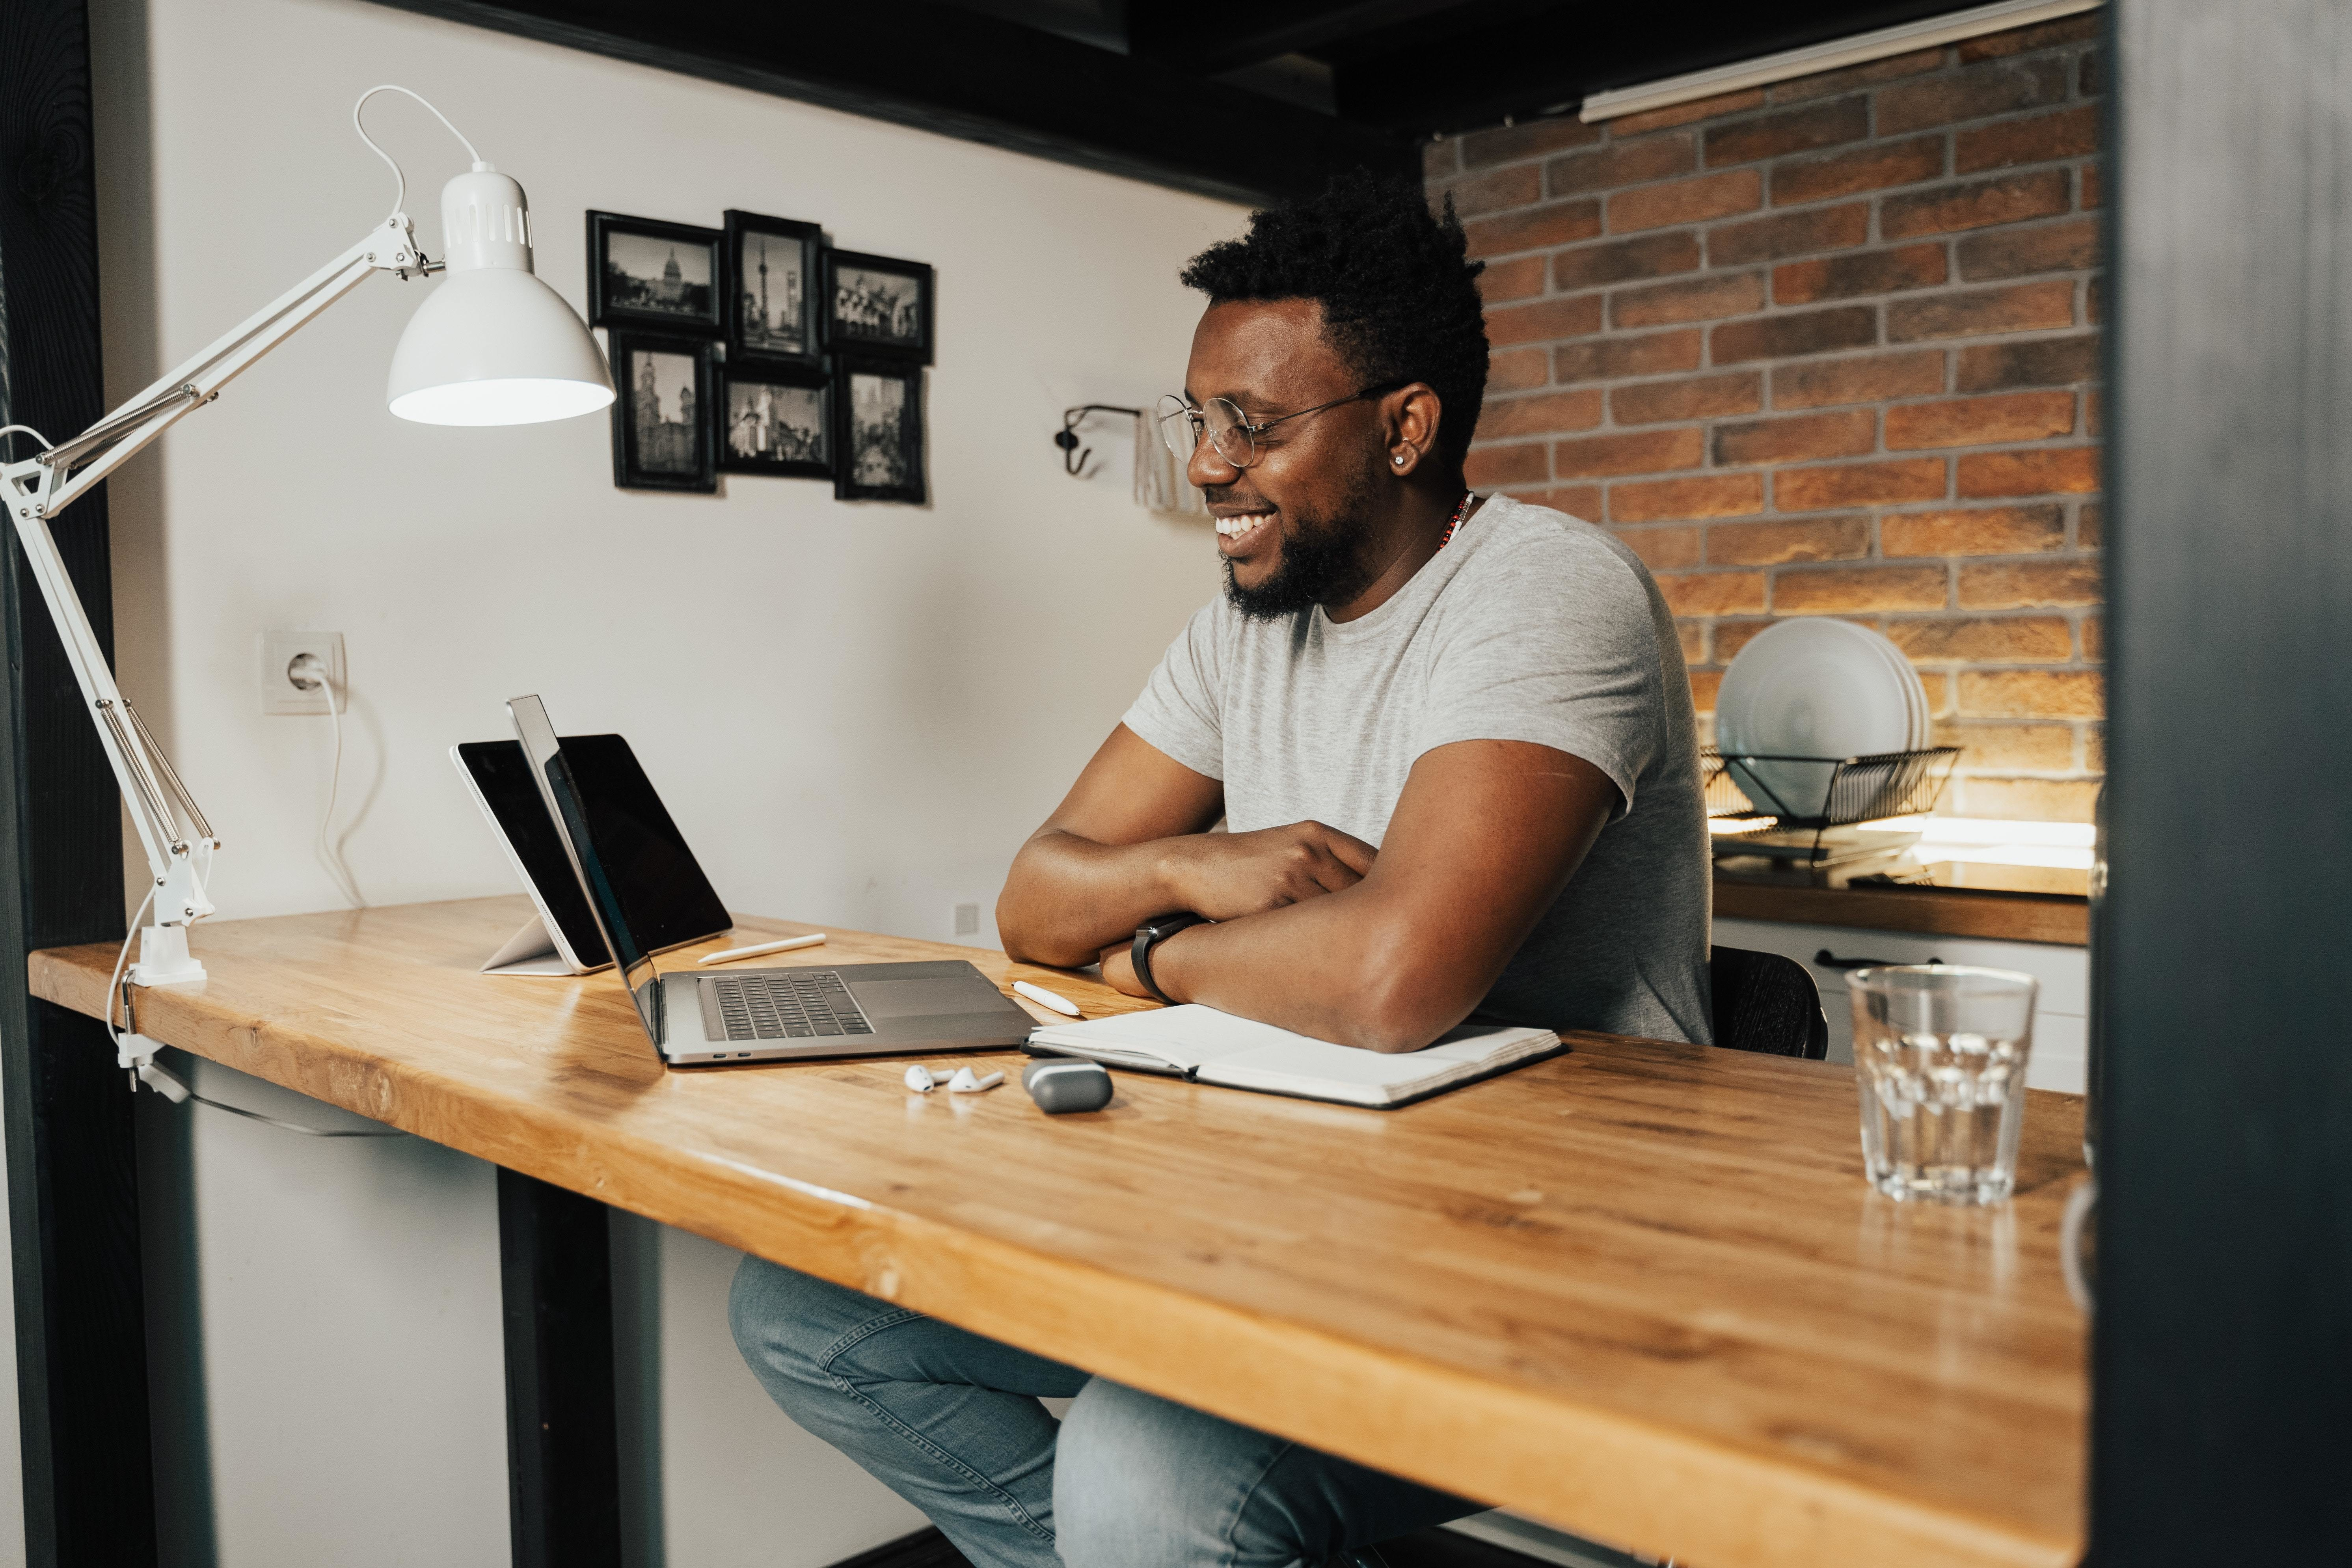 Employers will need to engage employees, wherever they work